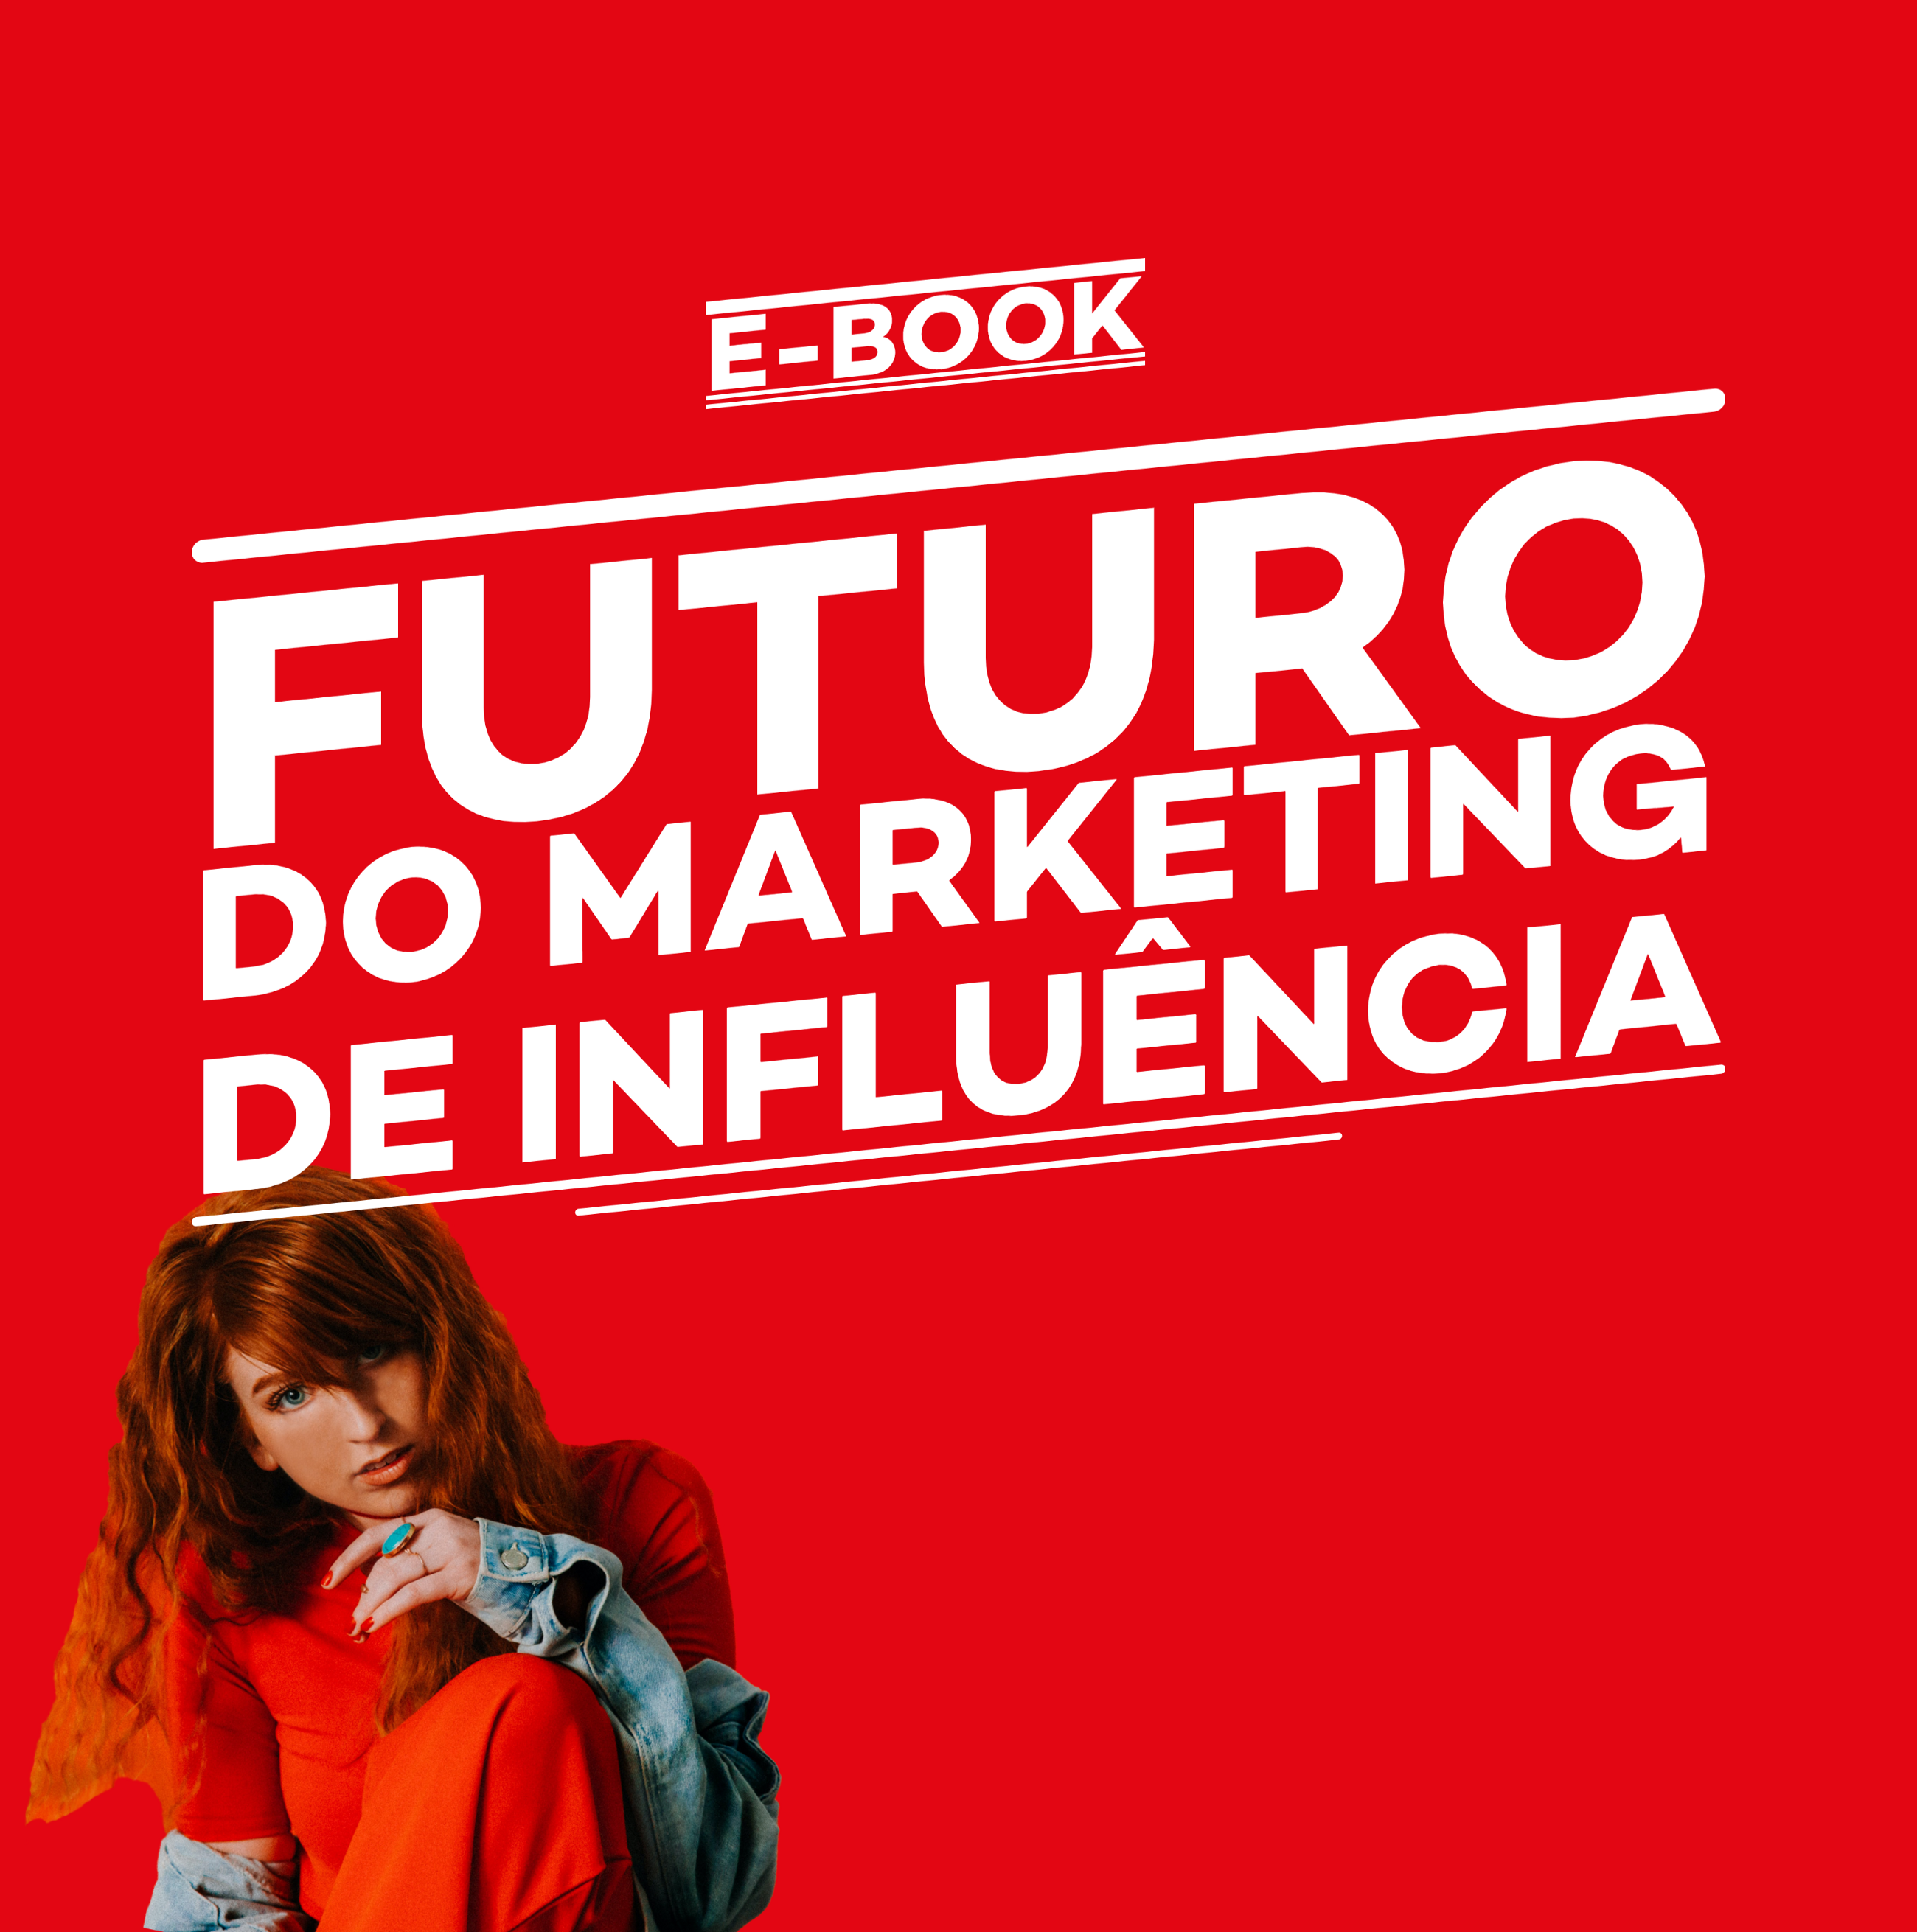 E-book — Futuro do Marketing de Influência